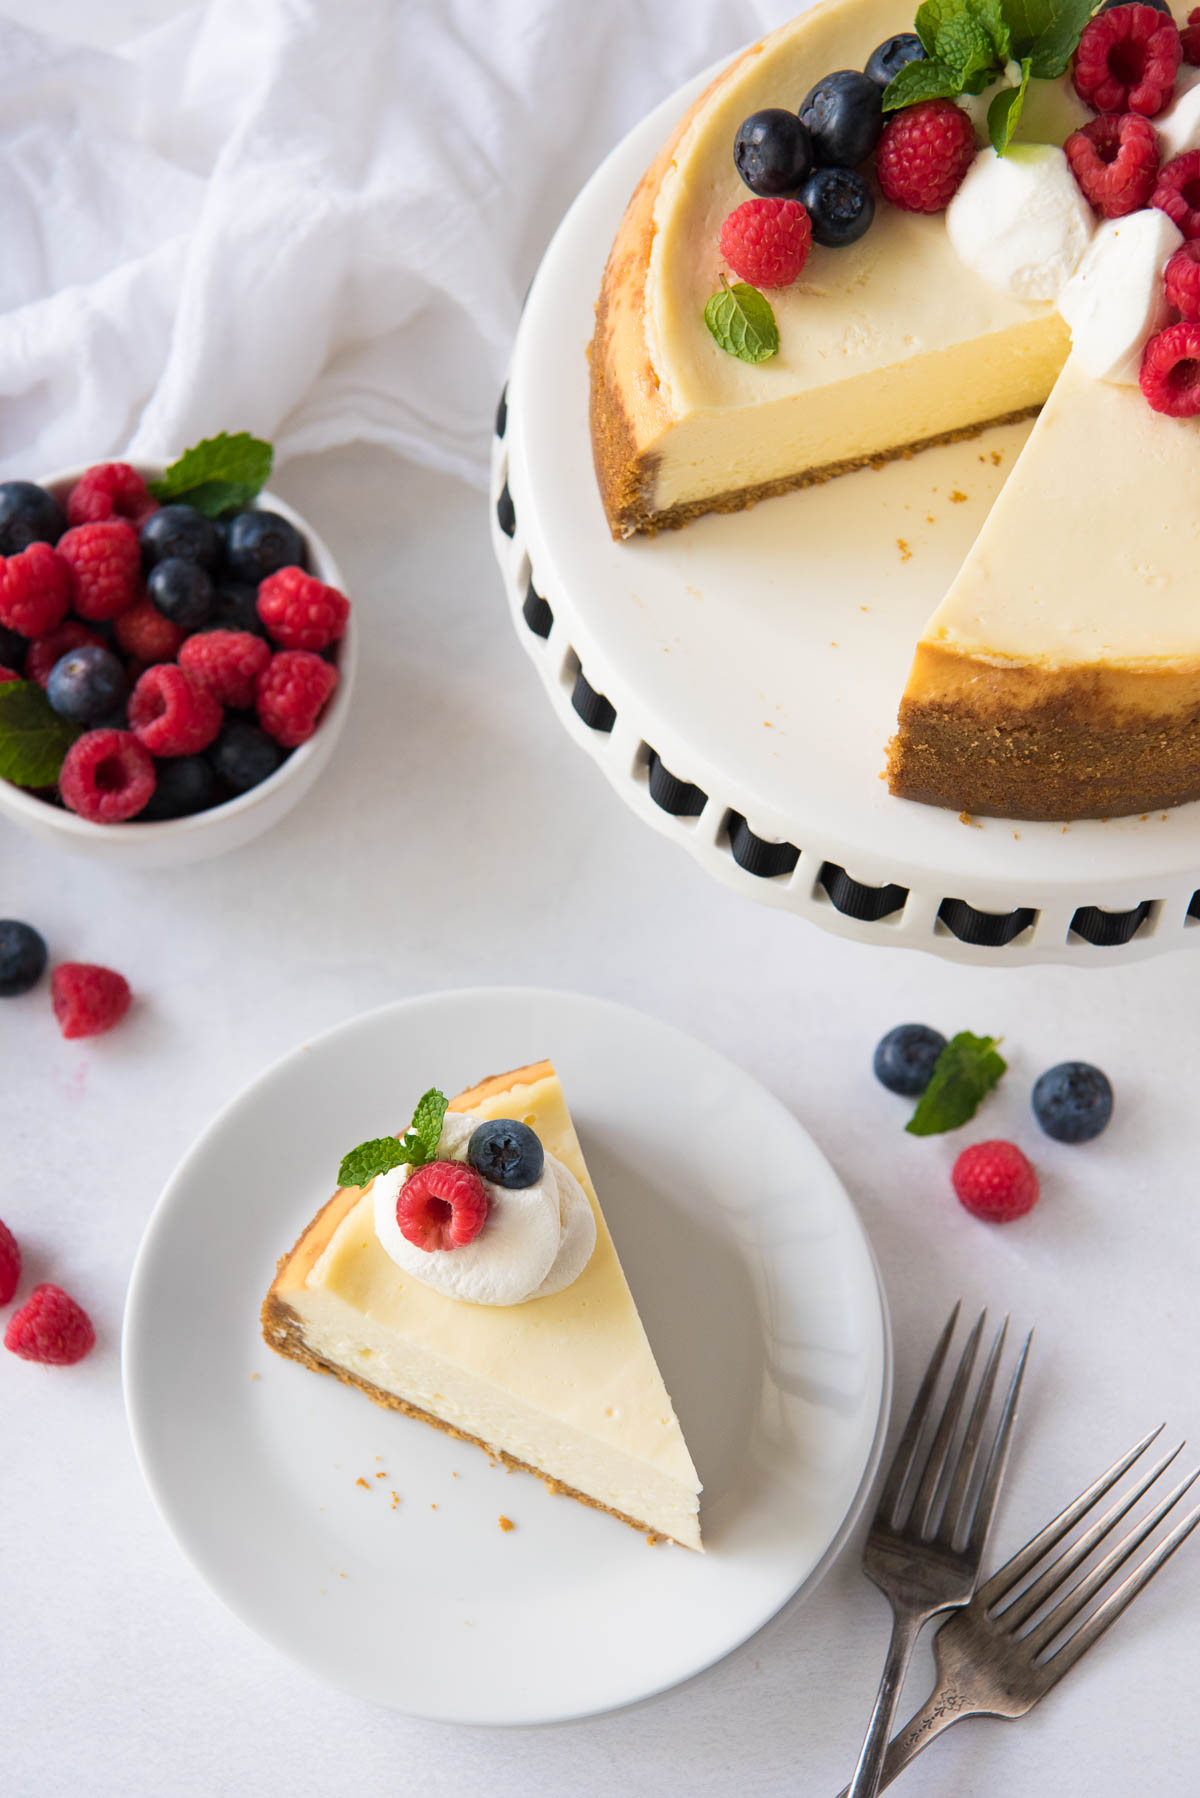 slice of cheesecake on a plate with whole cut cheesecake in background